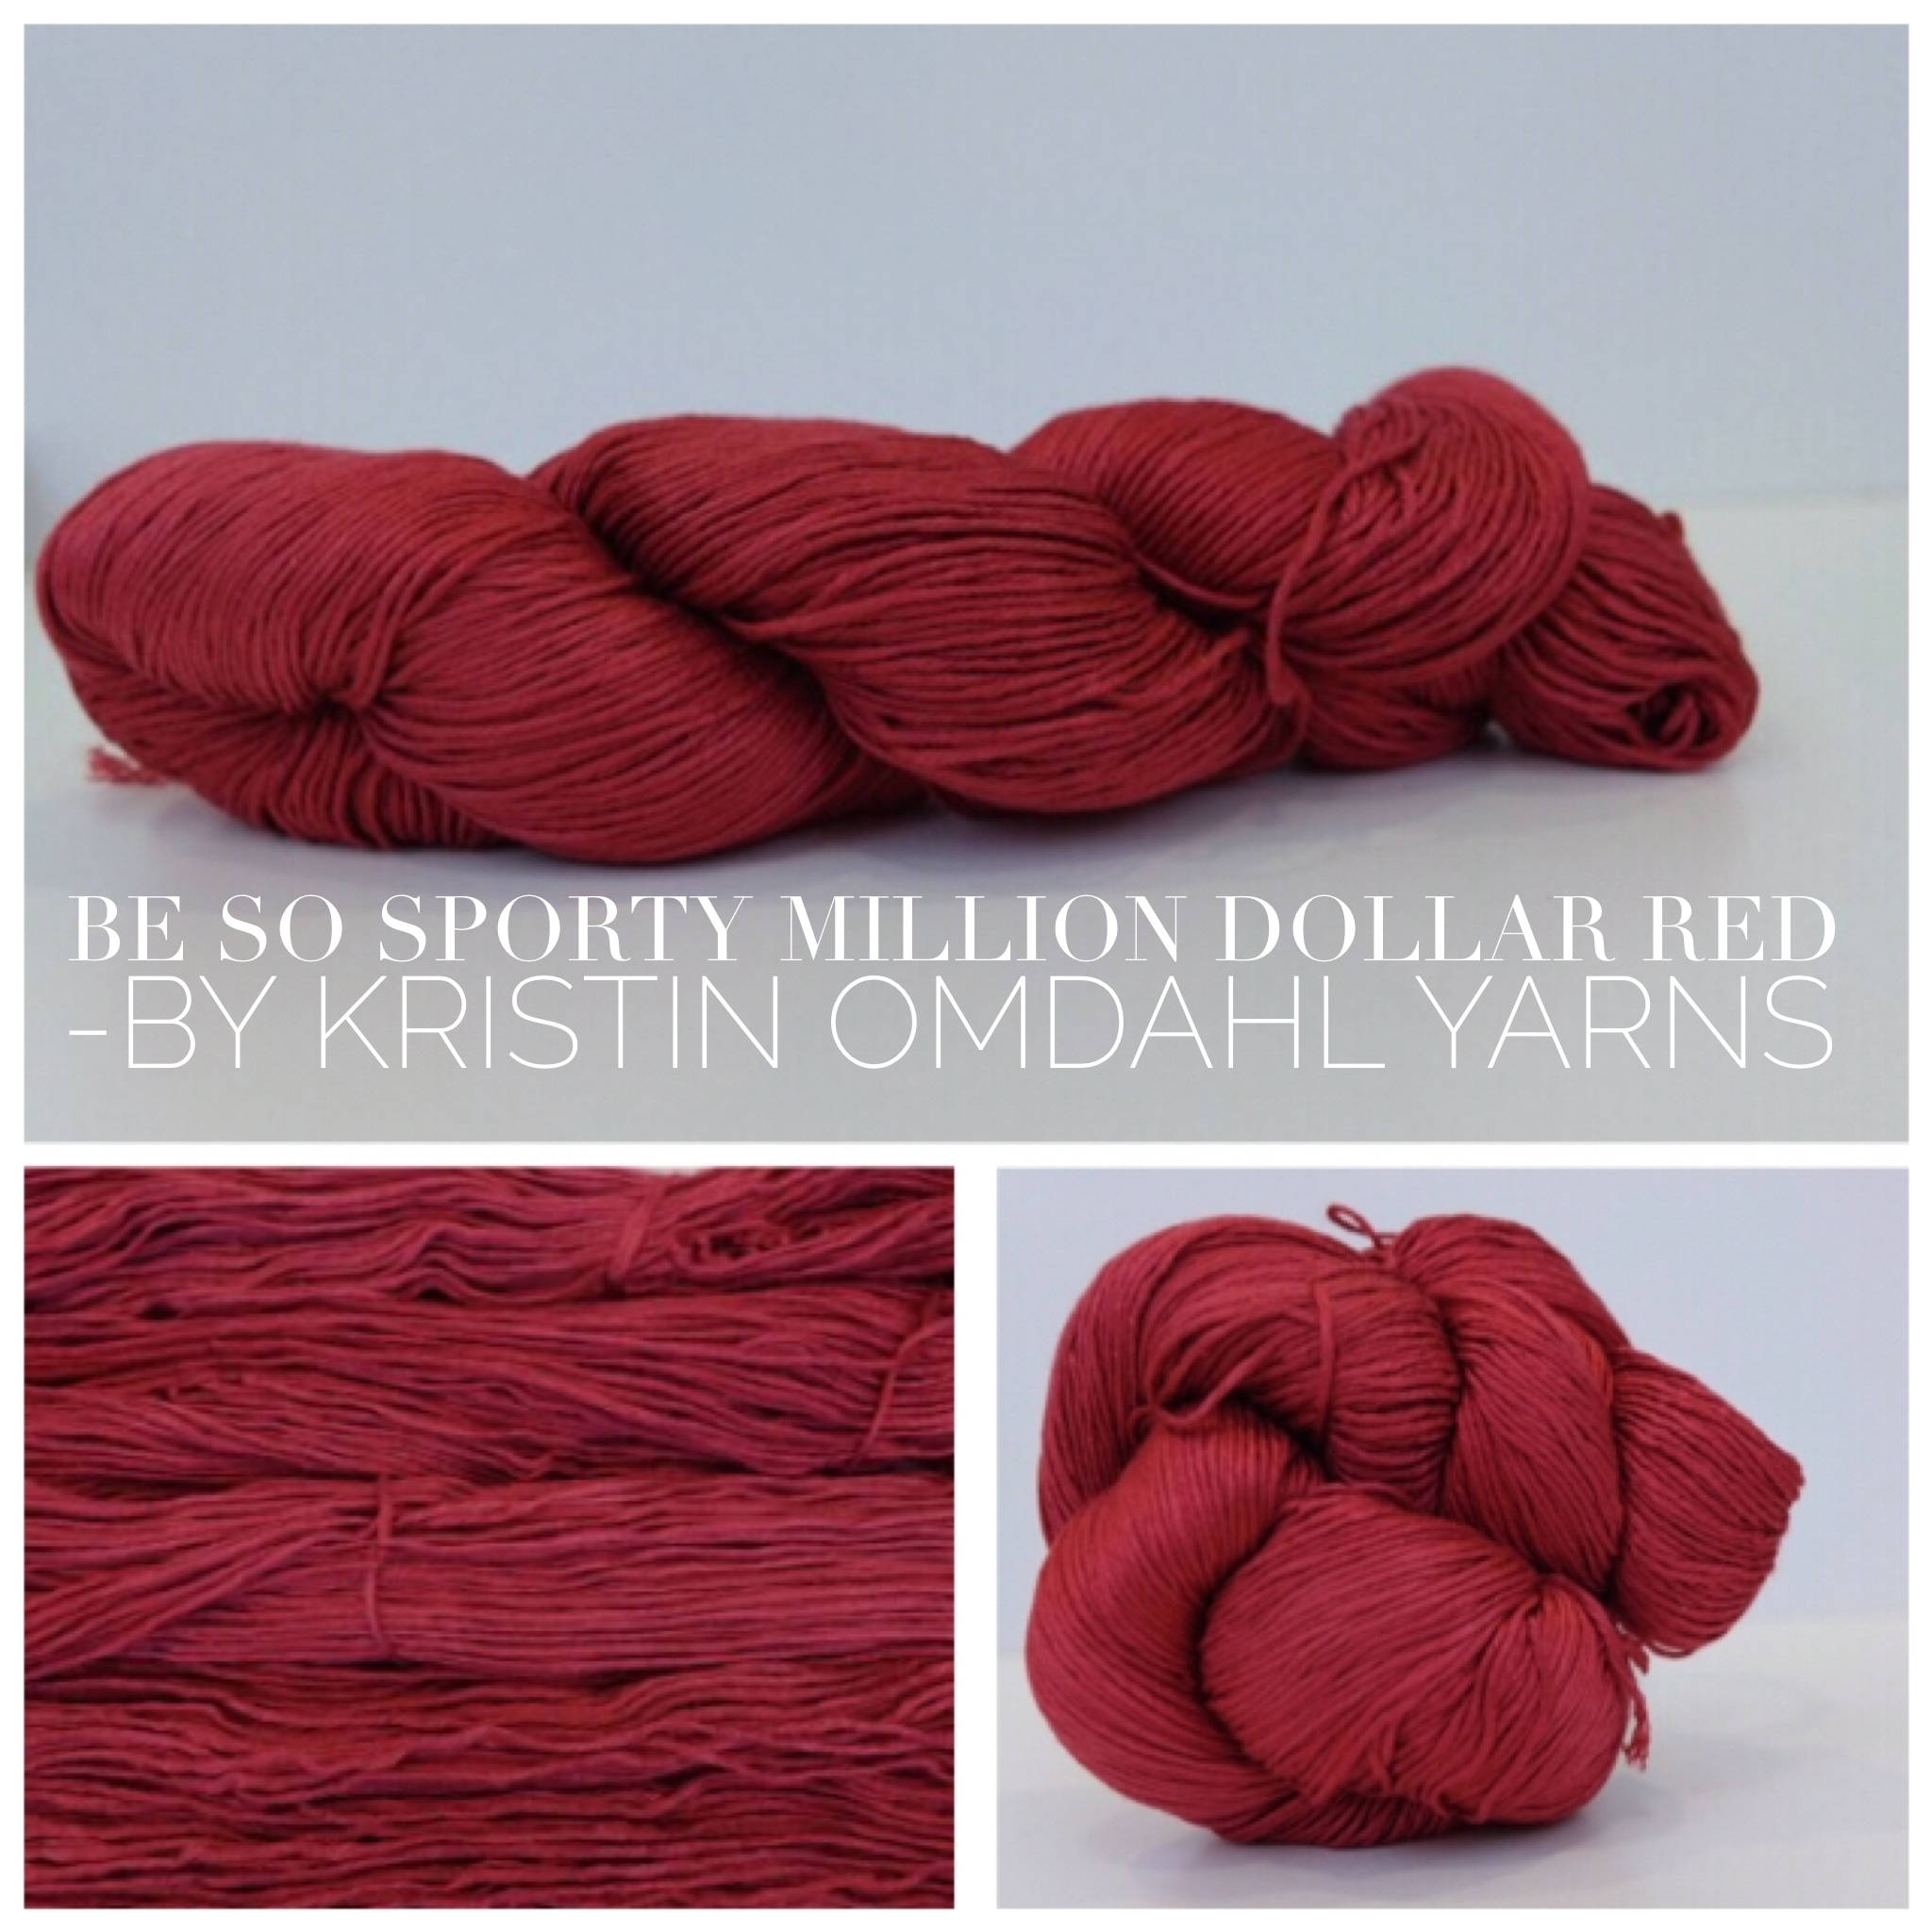 BSS millino dollar red collage.PNG